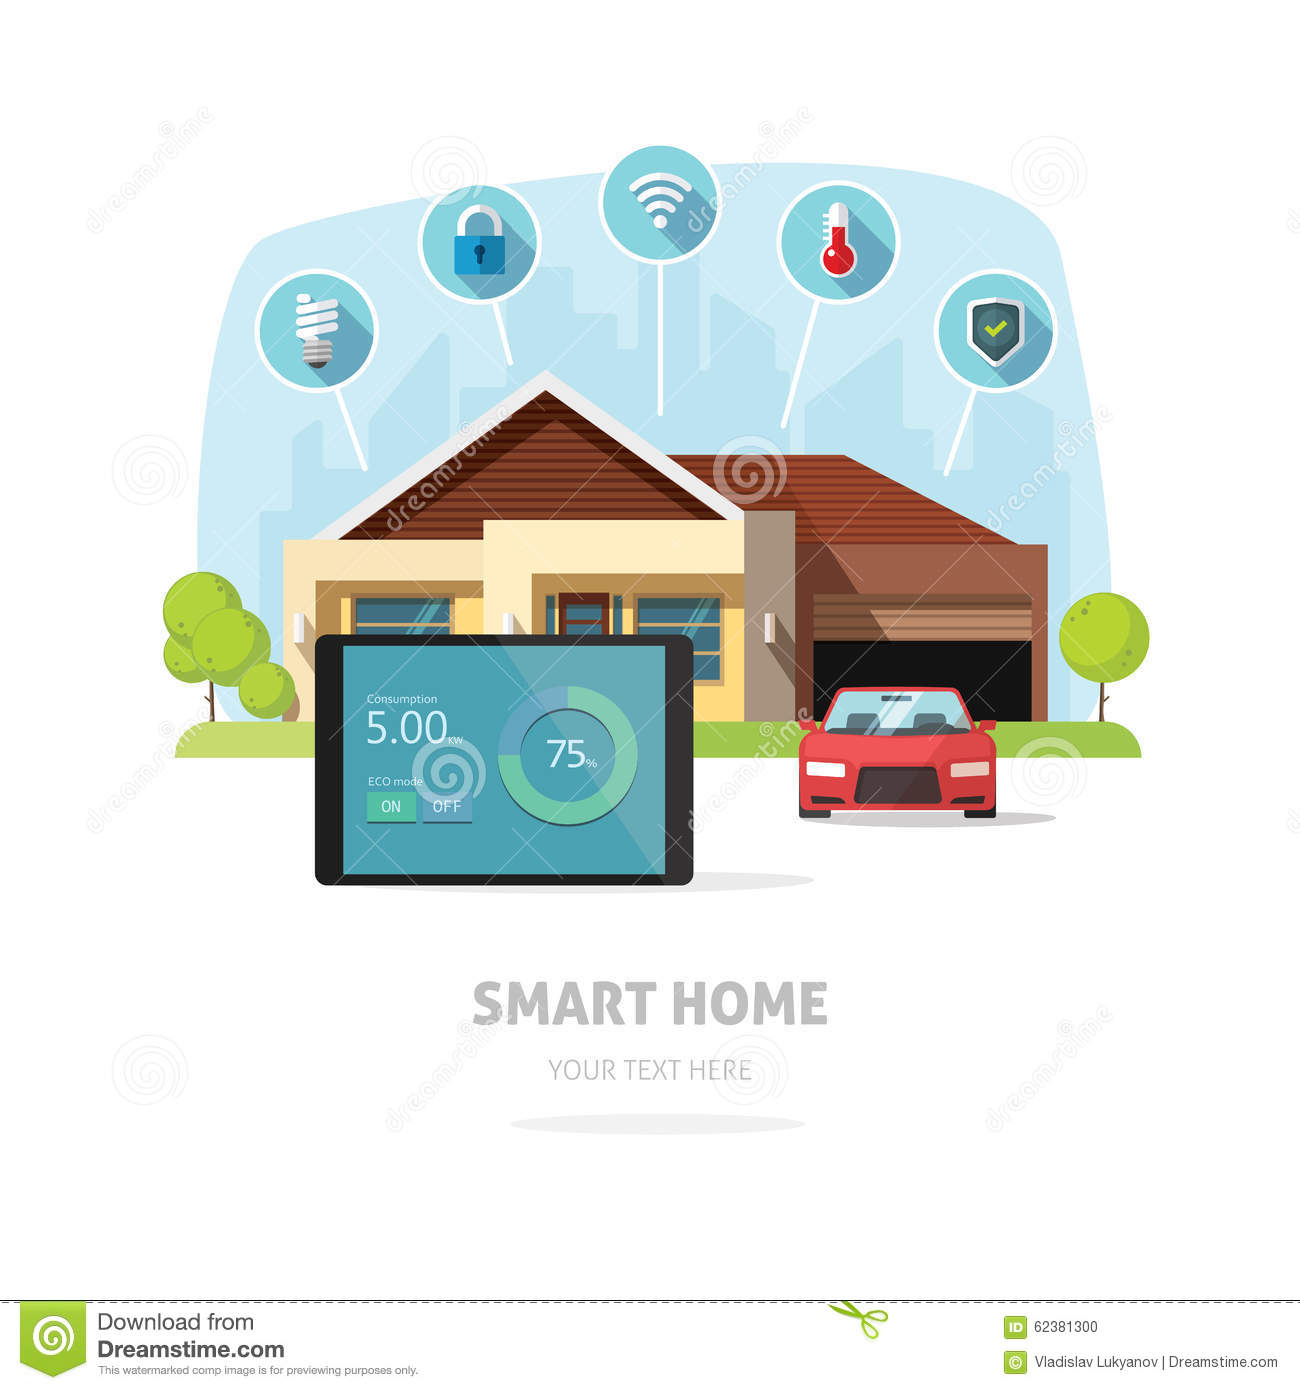 Exceptional smart house plans 2 smart home flat style for Smart home plan